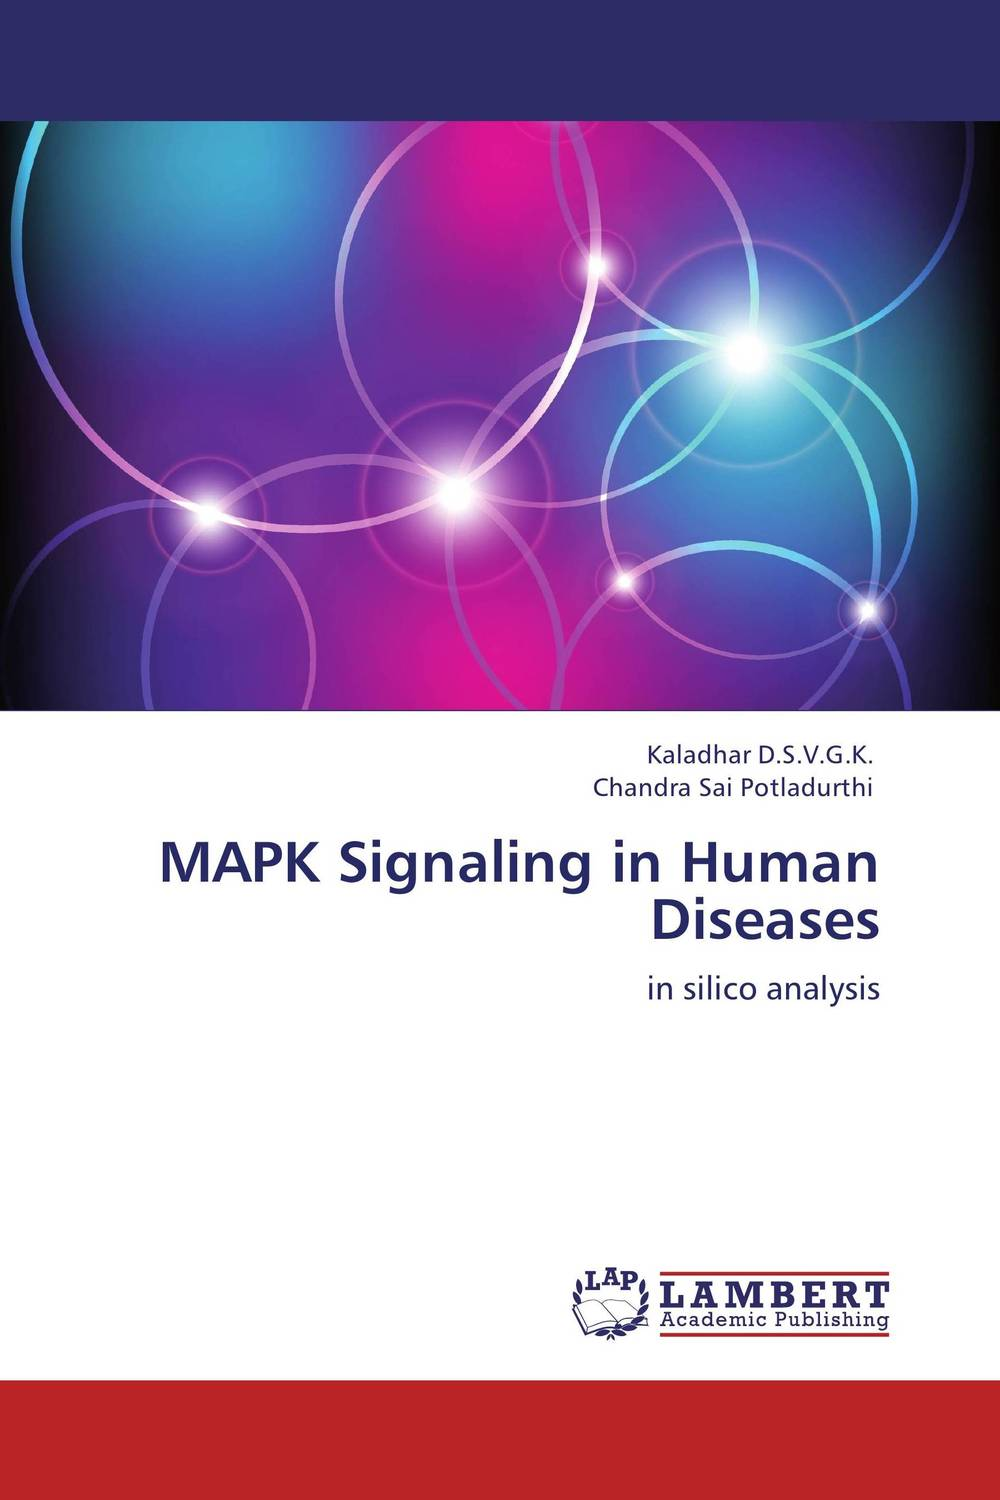 Фото MAPK Signaling in Human Diseases cervical cancer in amhara region in ethiopia